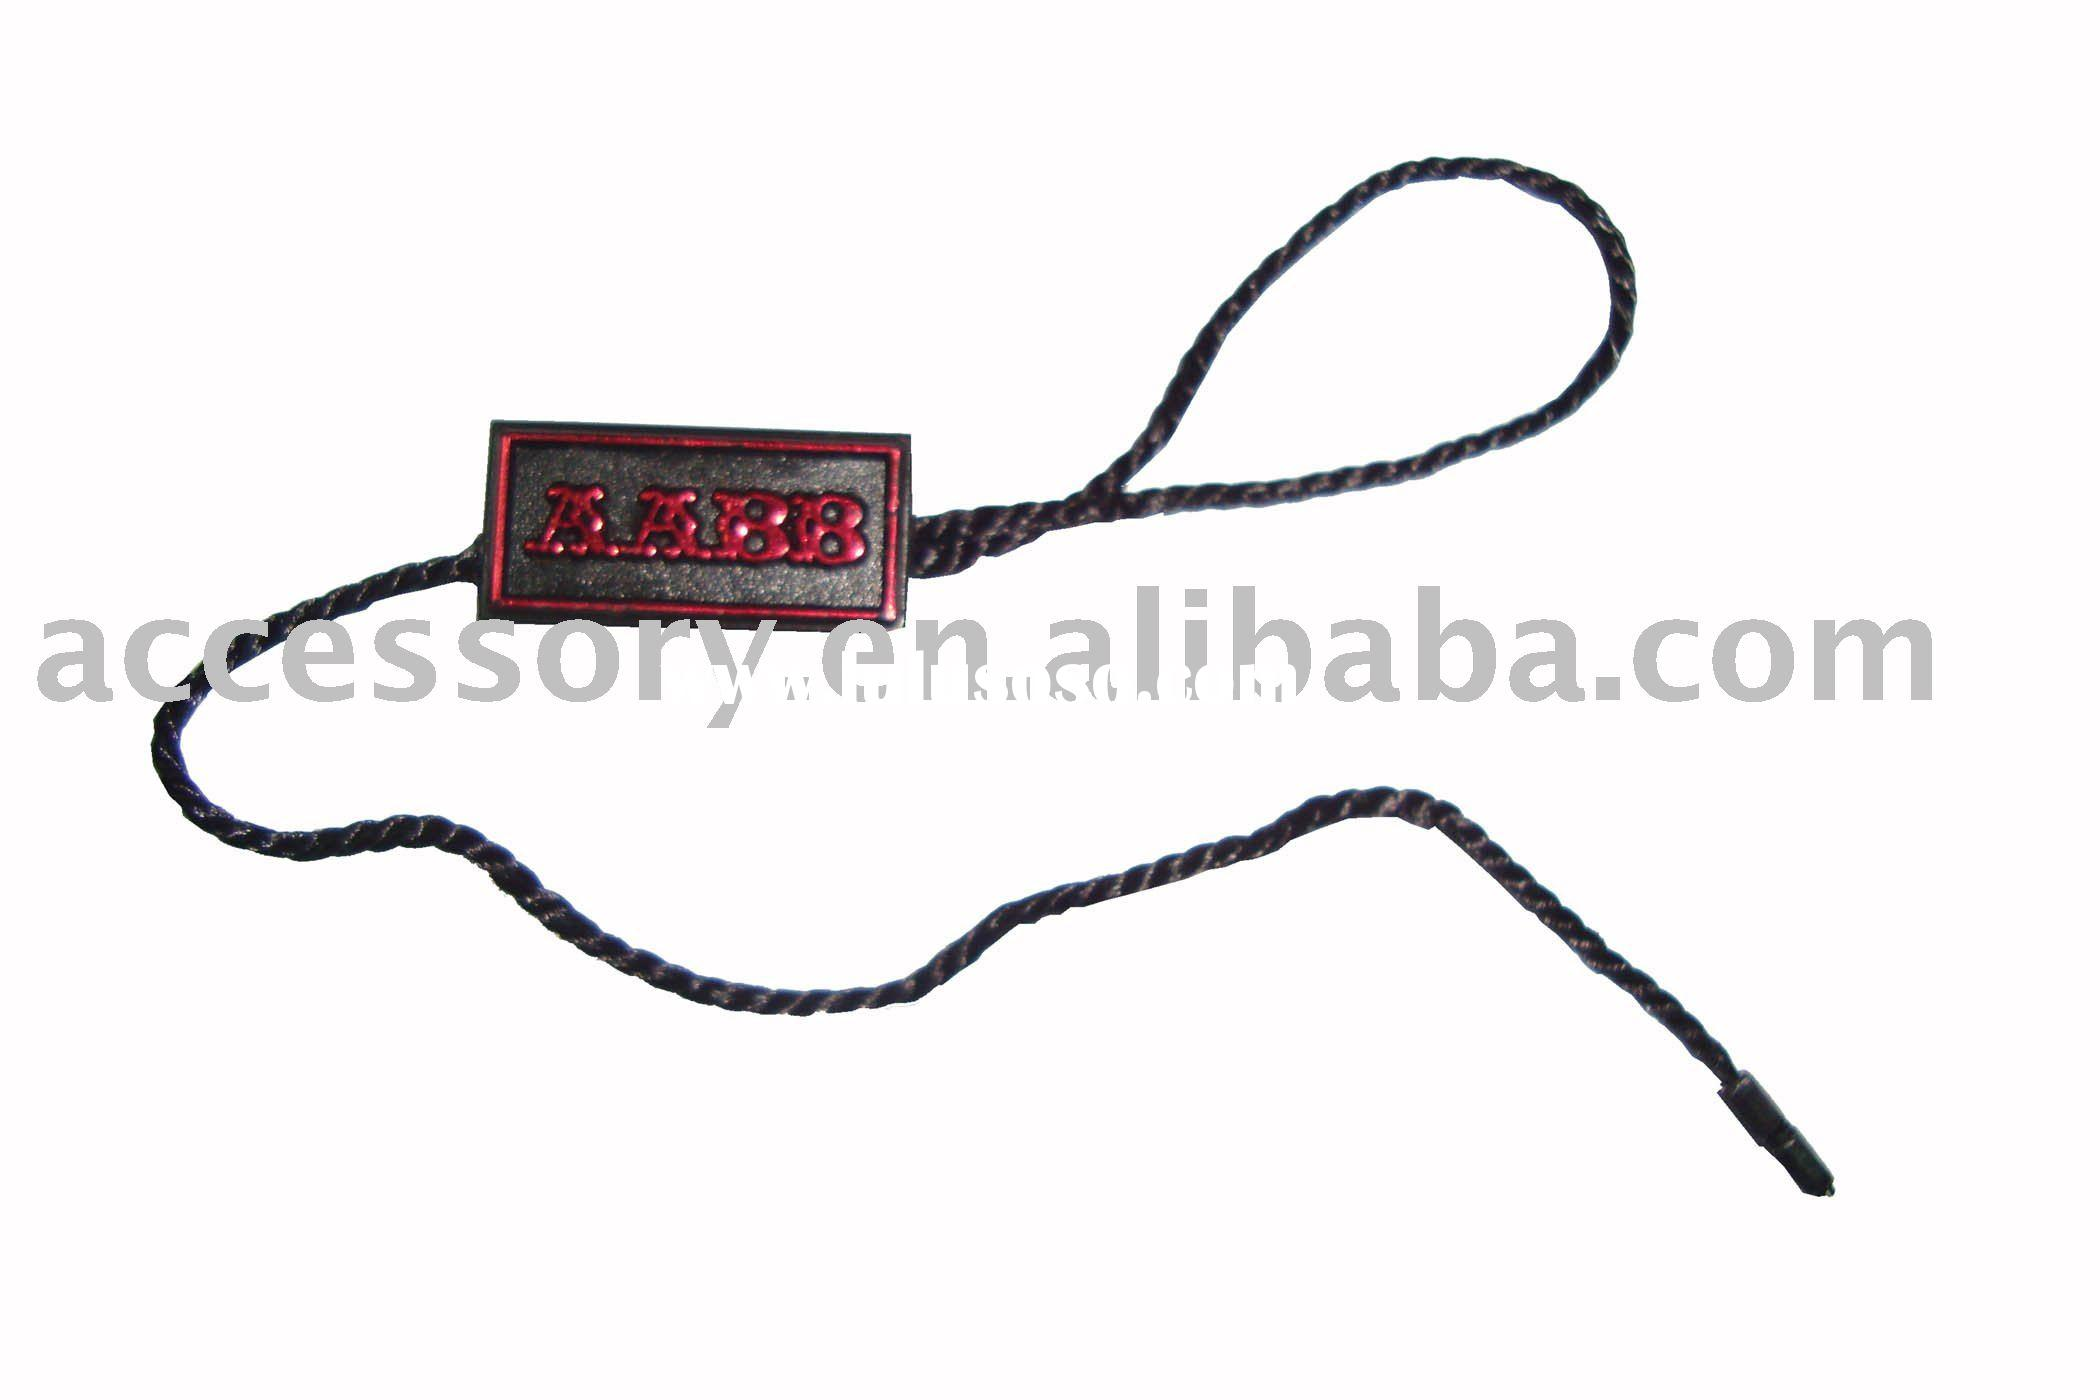 Electric Cord Lock Electric Cord Lock Manufacturers In